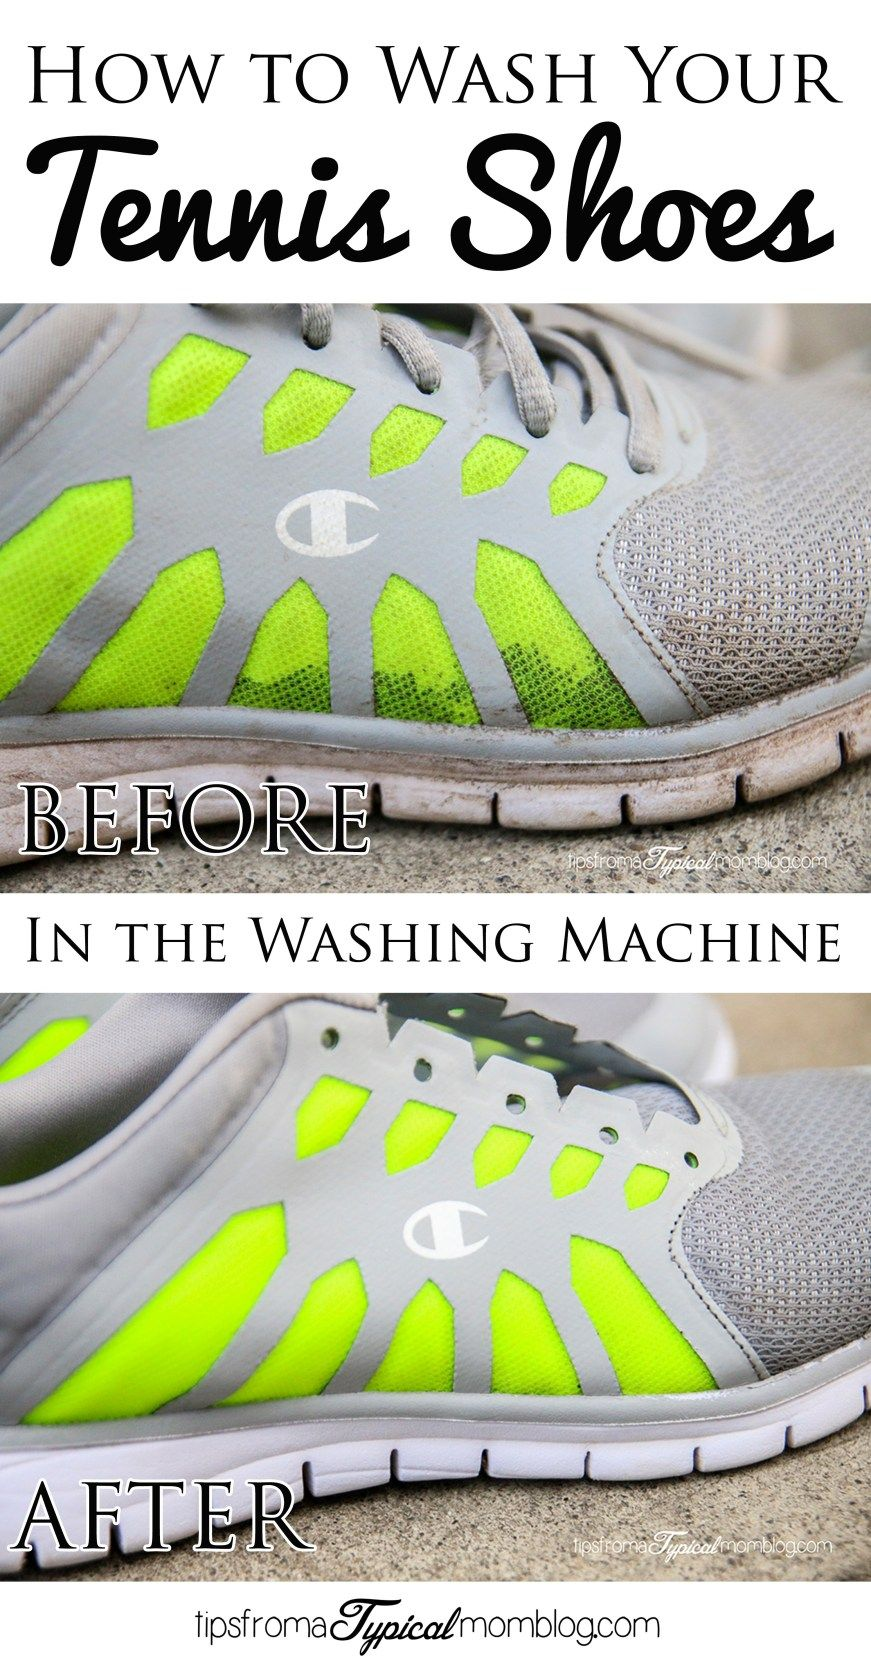 How to Wash Your Tennis Shoes in the Washing Machine в 2020